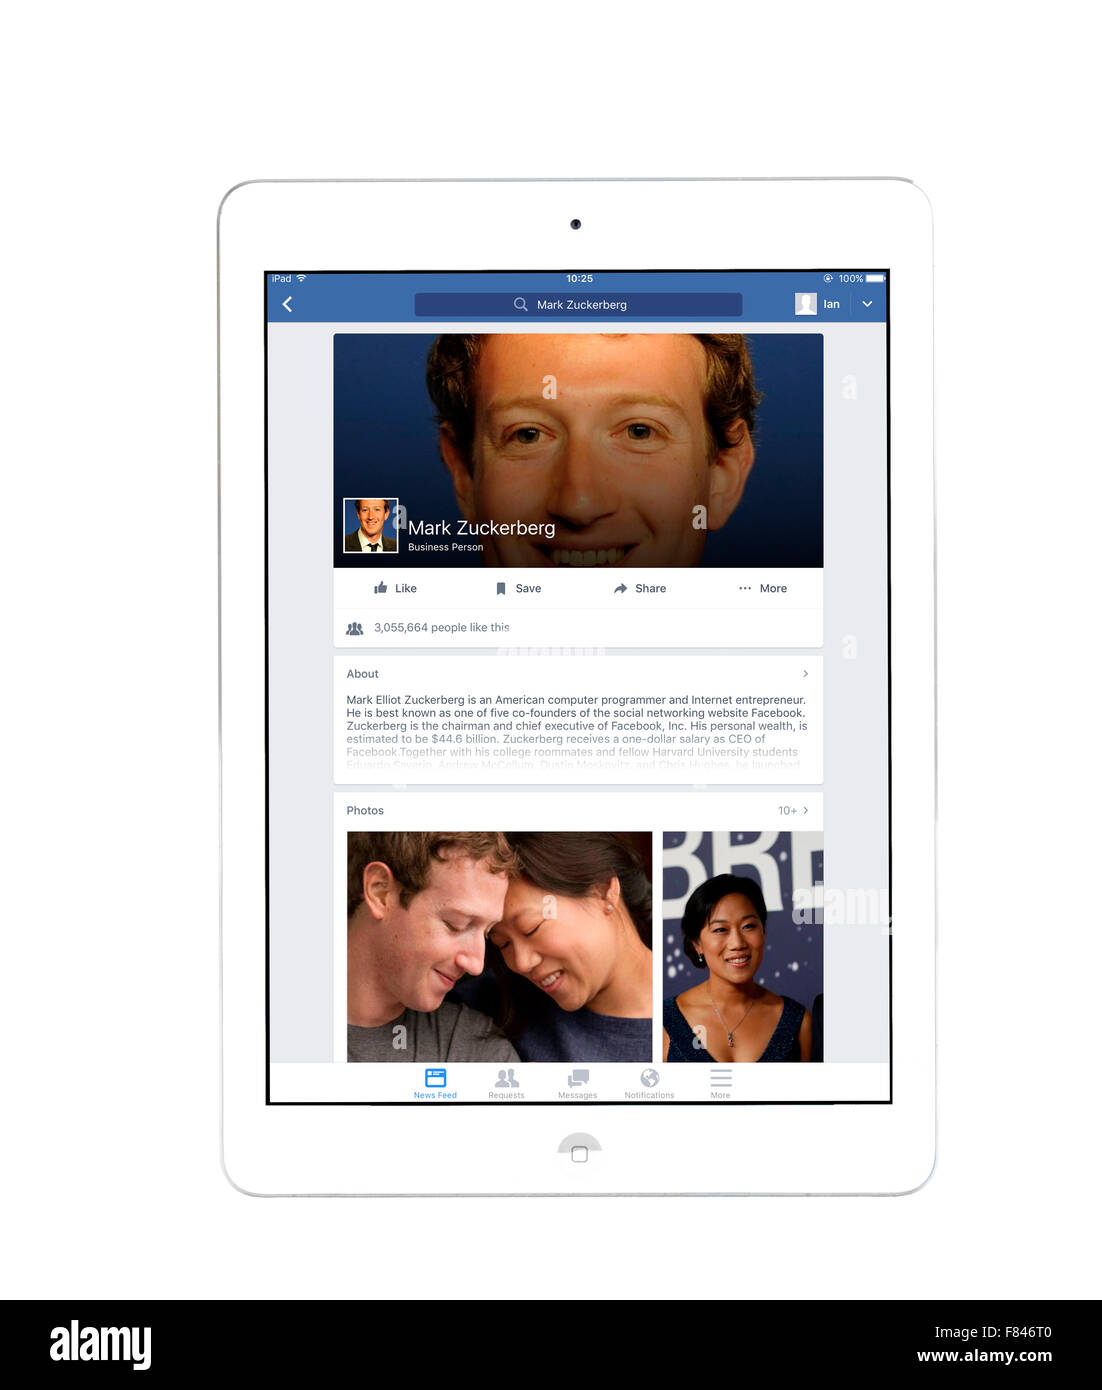 Mark Zuckerberg's home page on the Facebook app, viewed on an iPad Air - Stock Image